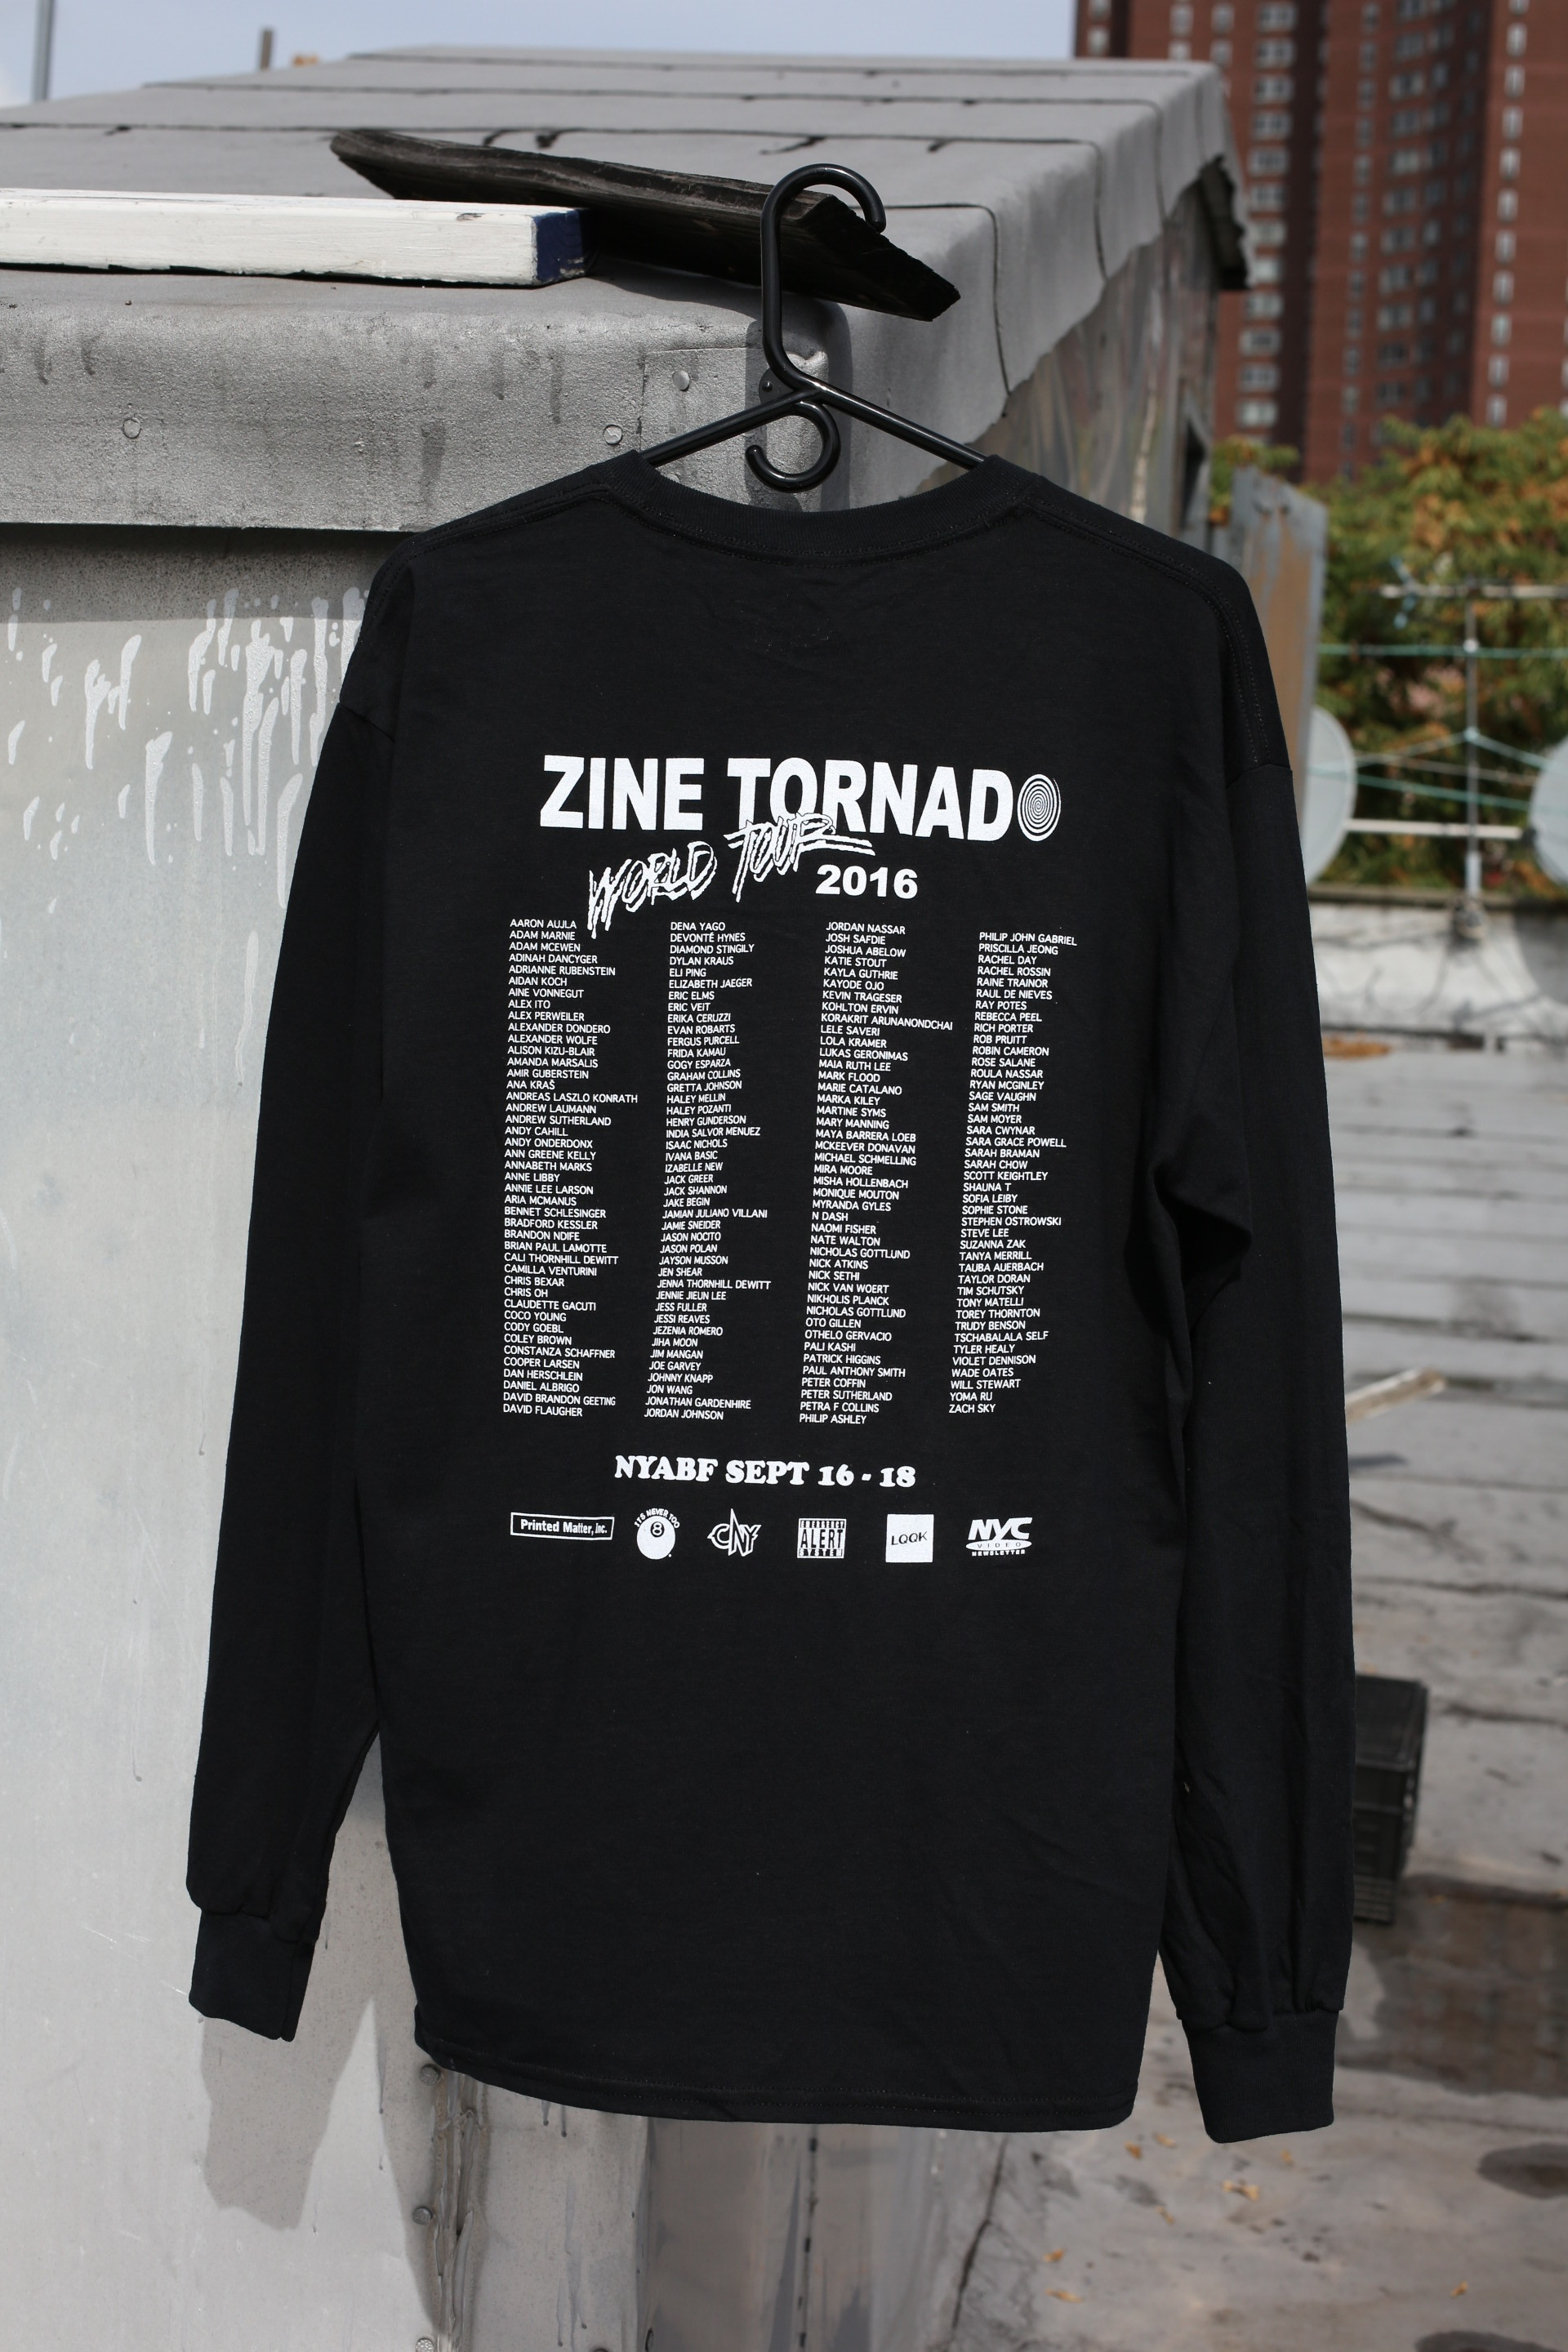 zine tornado world tour long t  ------- made exclusively for the ny art book fair @ moma ps1 2016